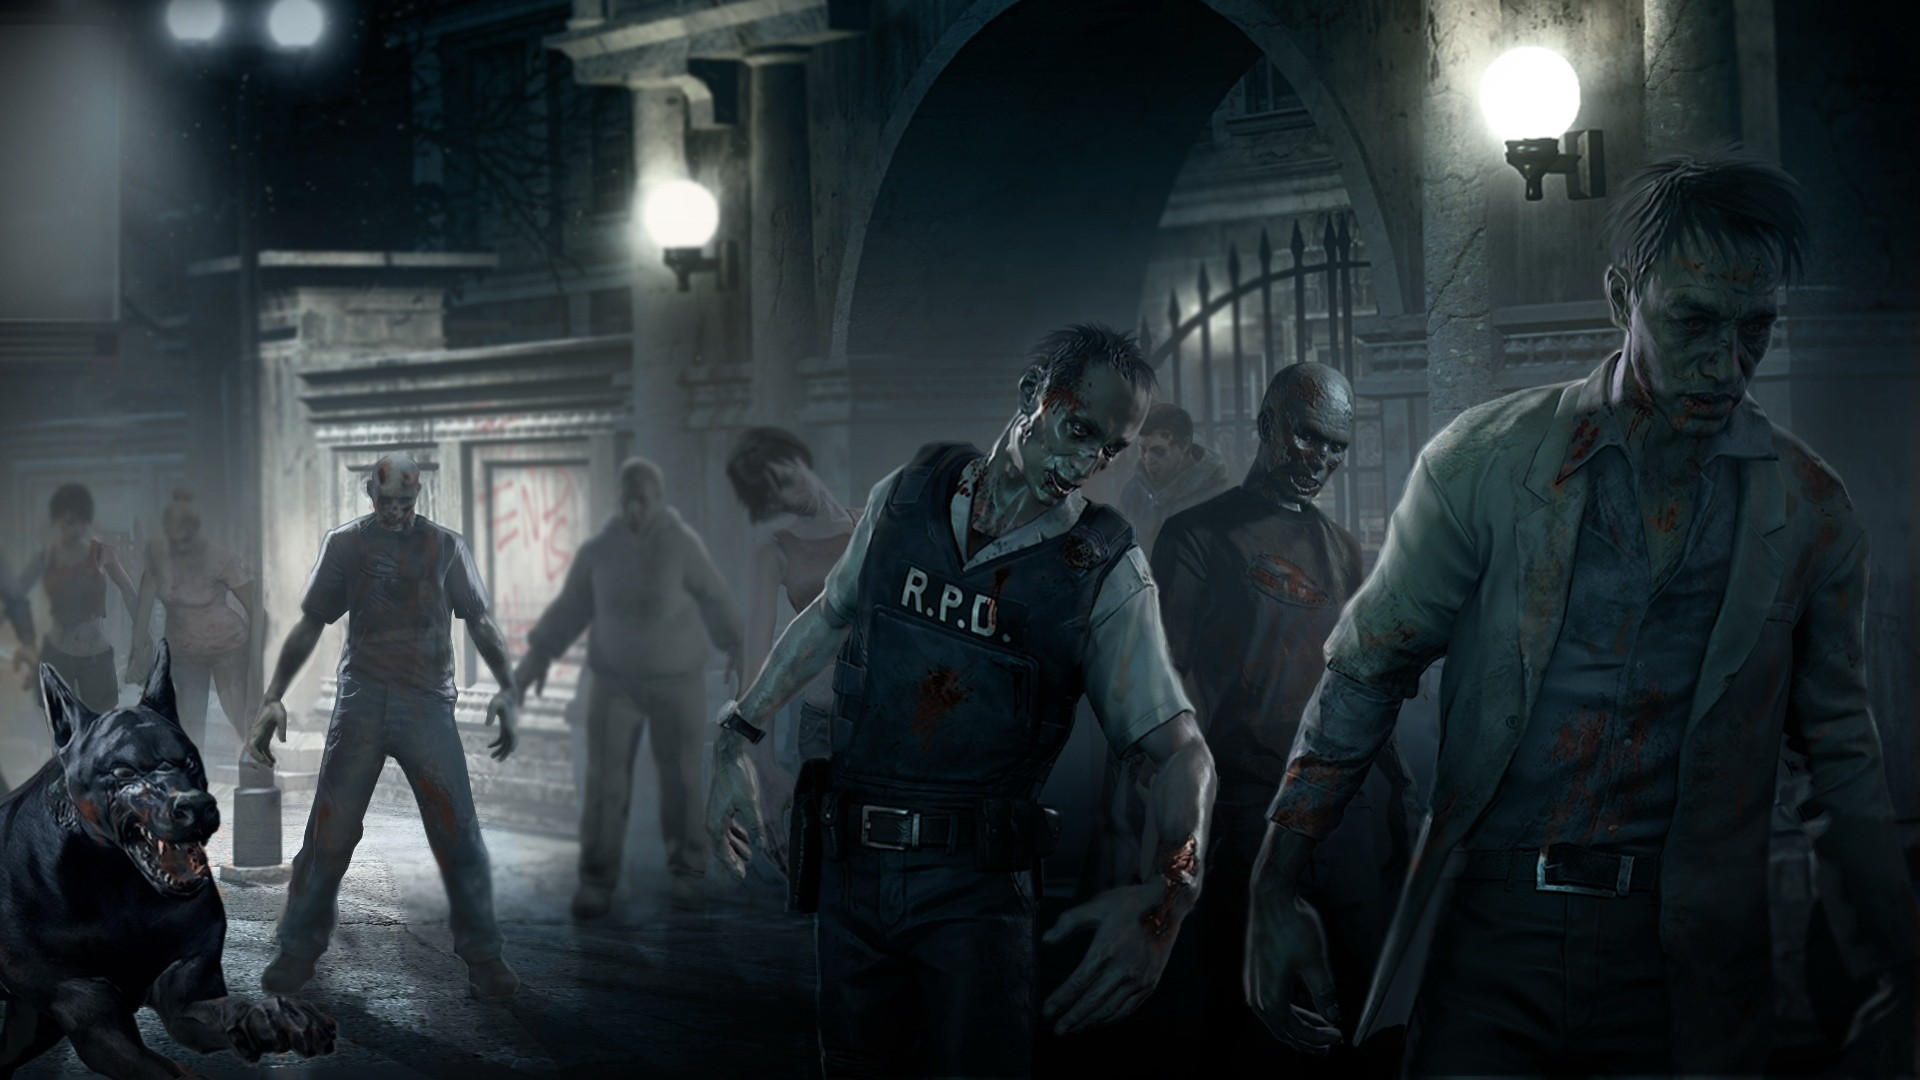 Resident Evil Wallpaper 1920x1080 - WallpaperSafari